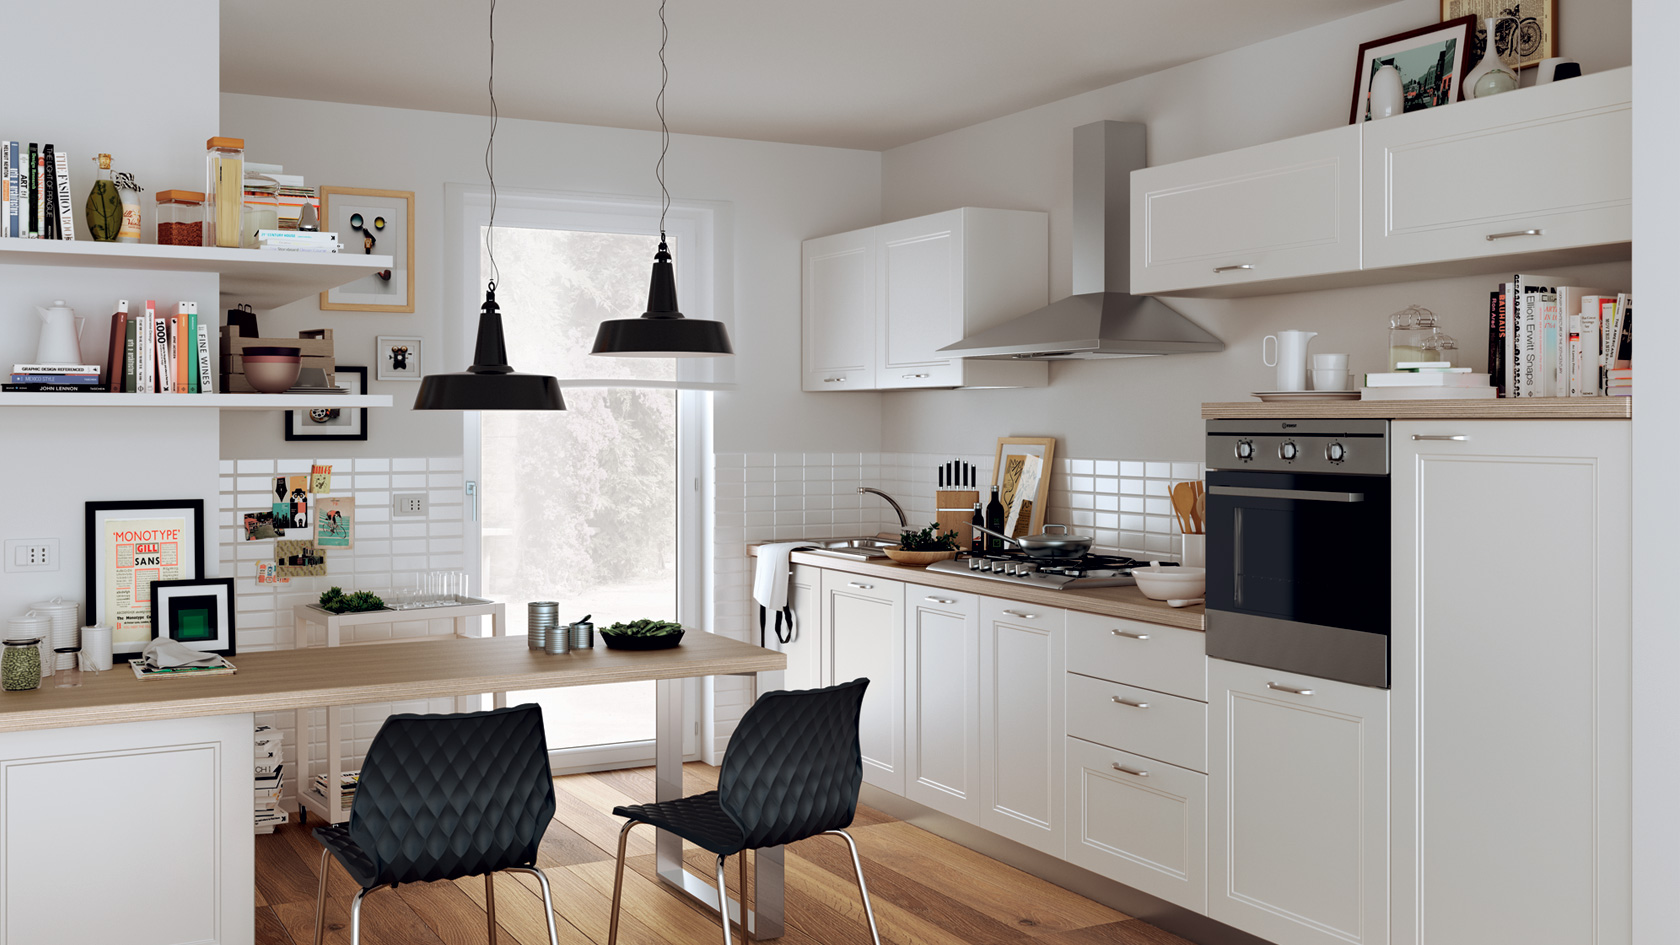 Colony kitchen dillon amber dane kitchens barbados - Cucina completa ikea ...